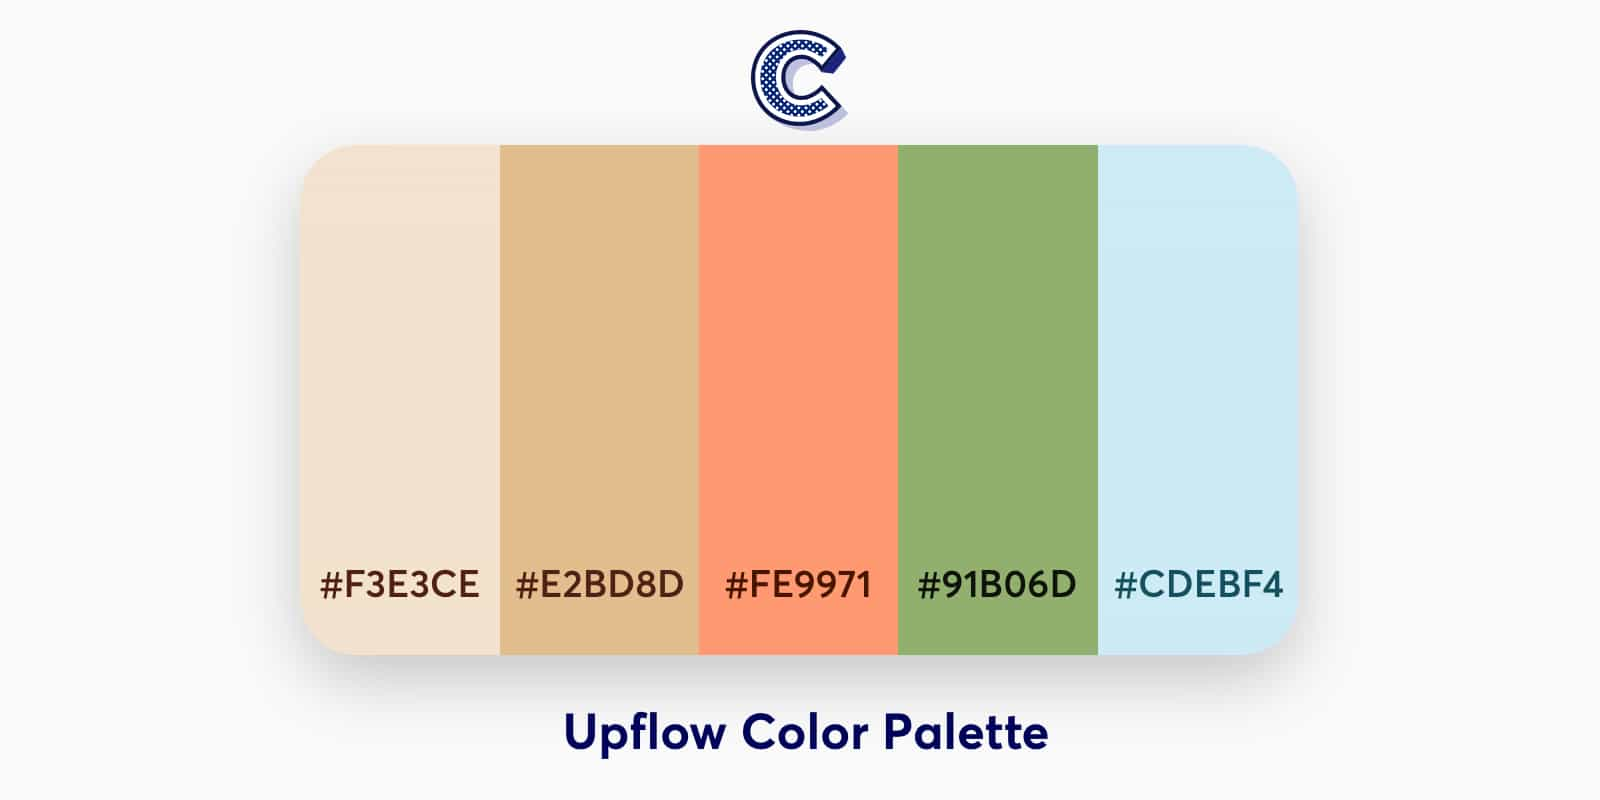 the featured image of upflow color palette